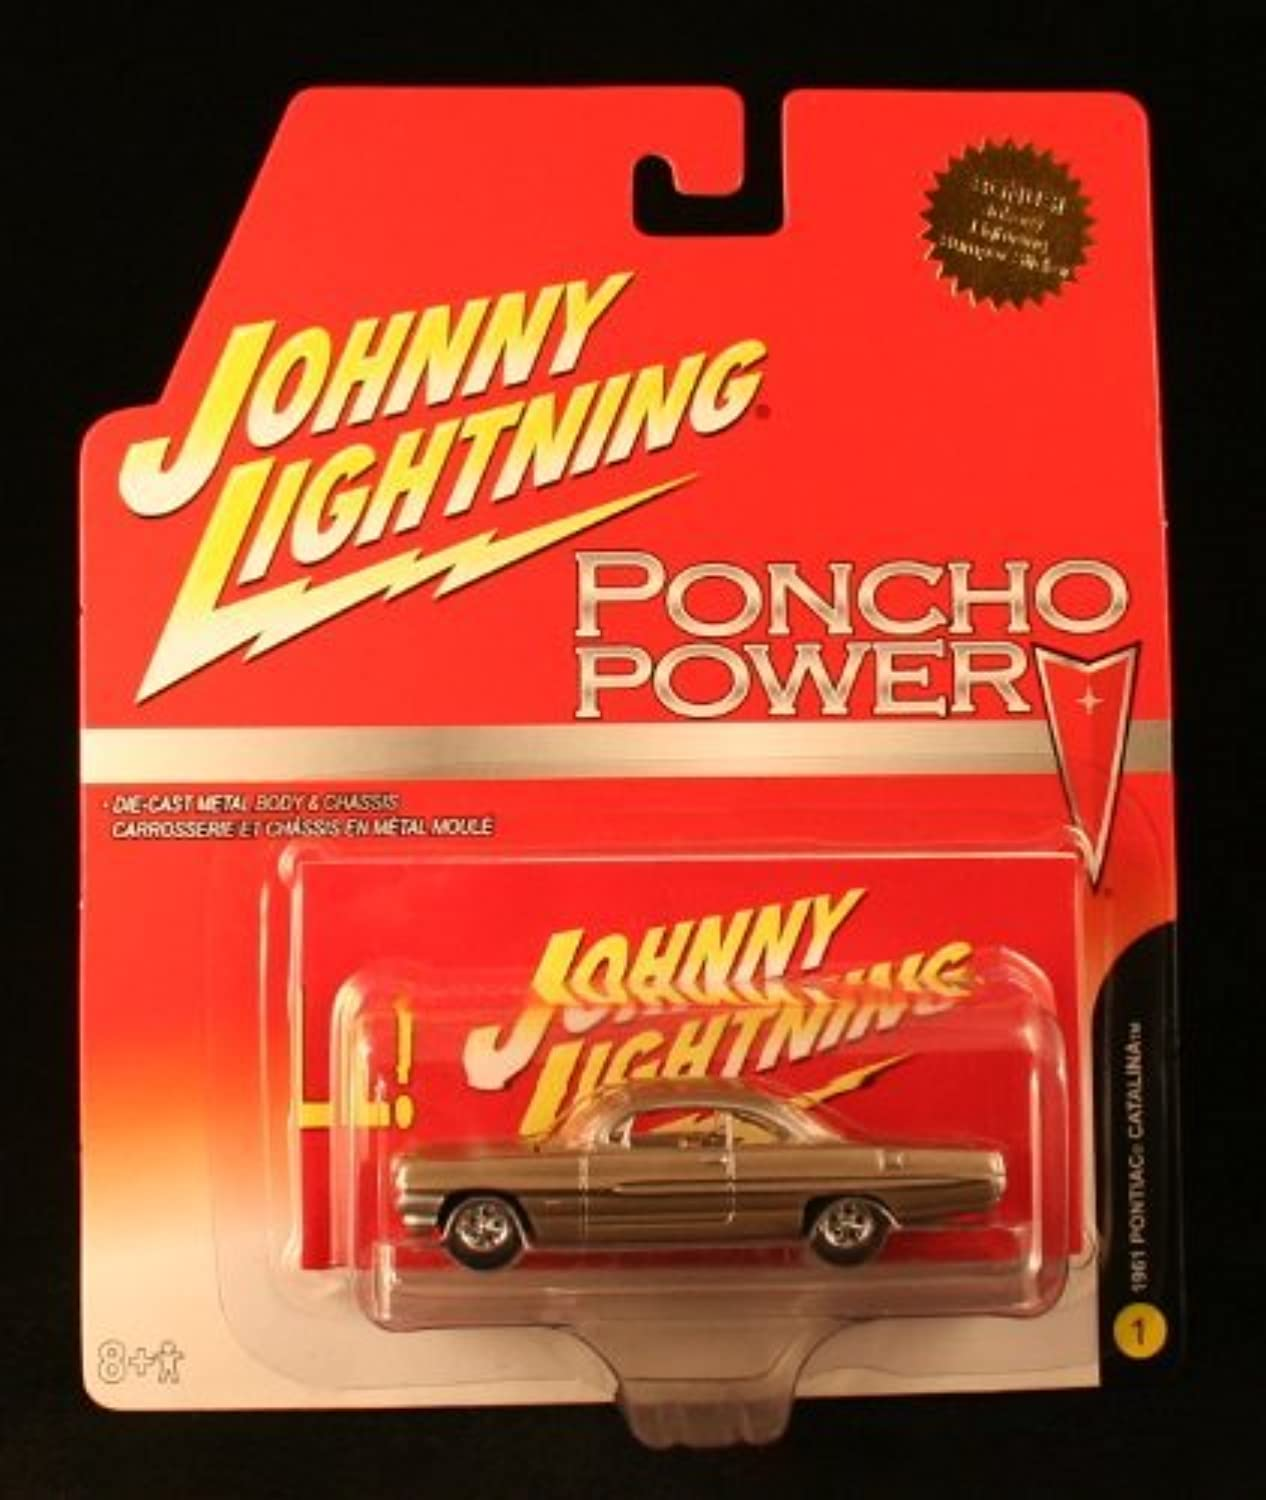 1961 PONTIAC CATALINA  1 Johnny Lightning 2006 PONCHO POWER COLLECTION 1 64 Scale Die Cast Vehicle by Johnny Lightning